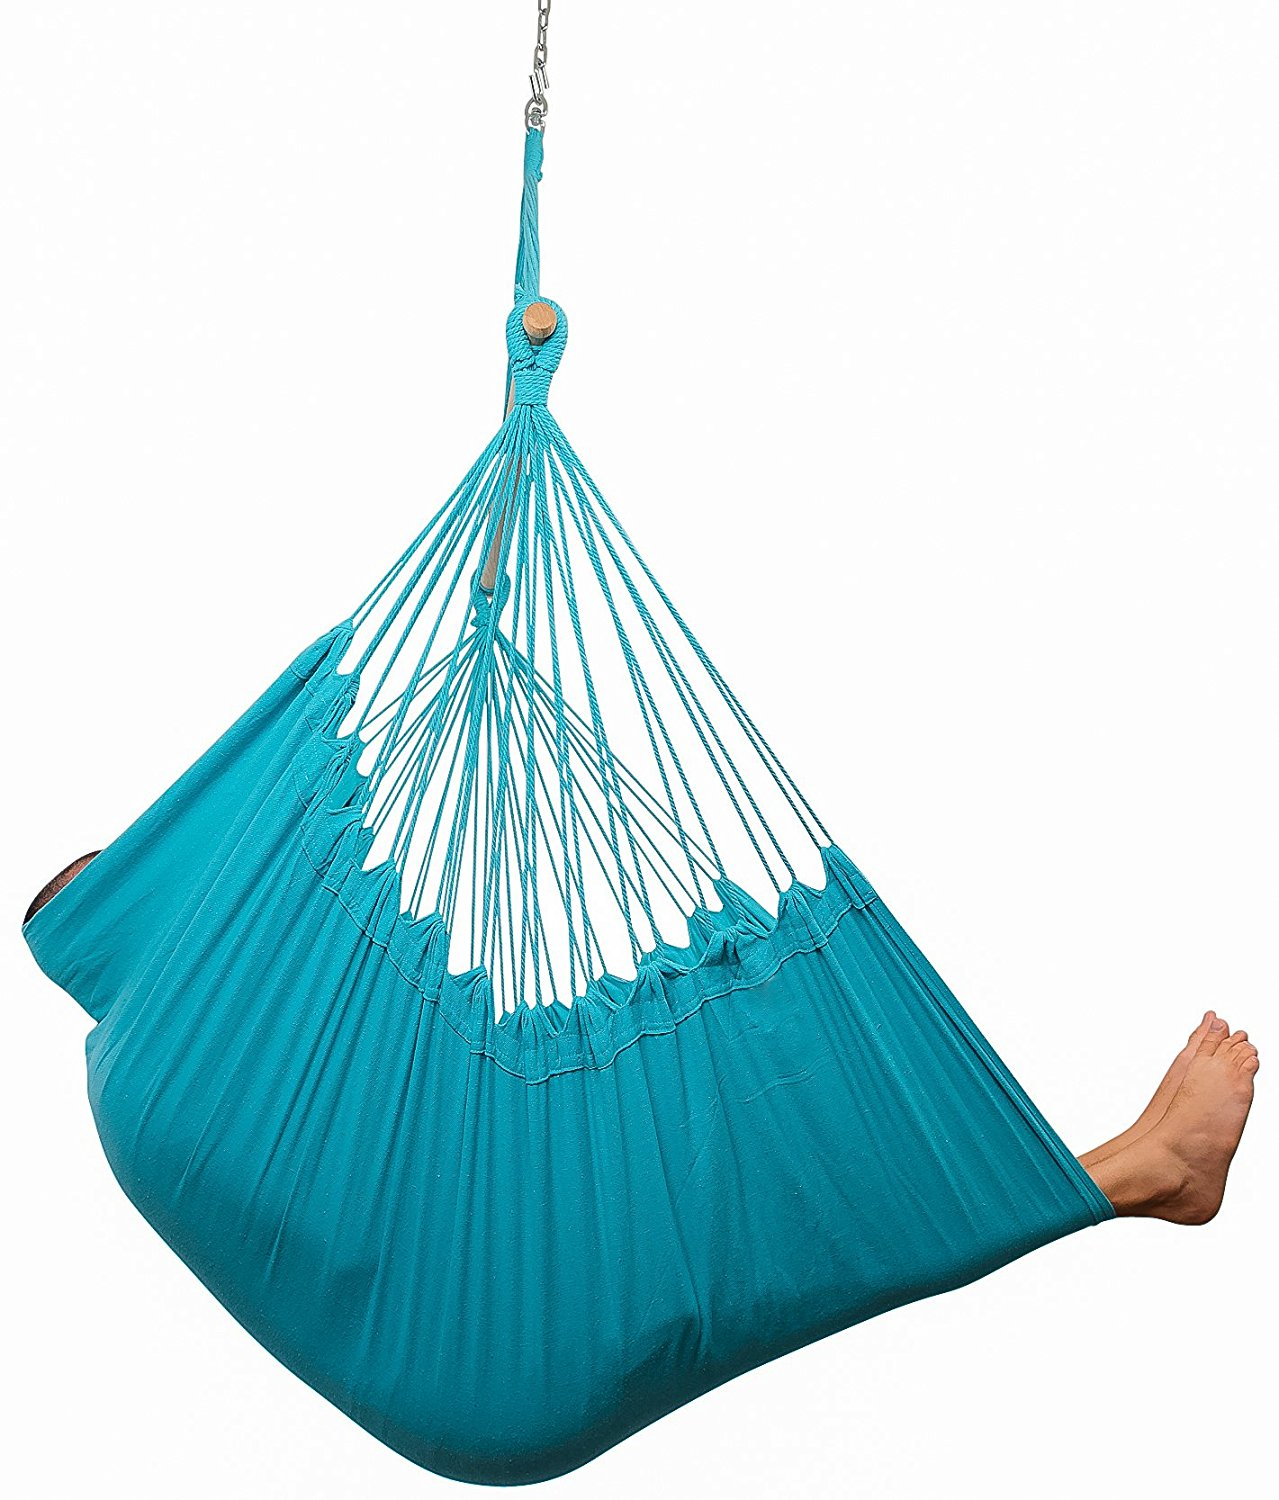 XXL Hammock Chair with Drink Holder